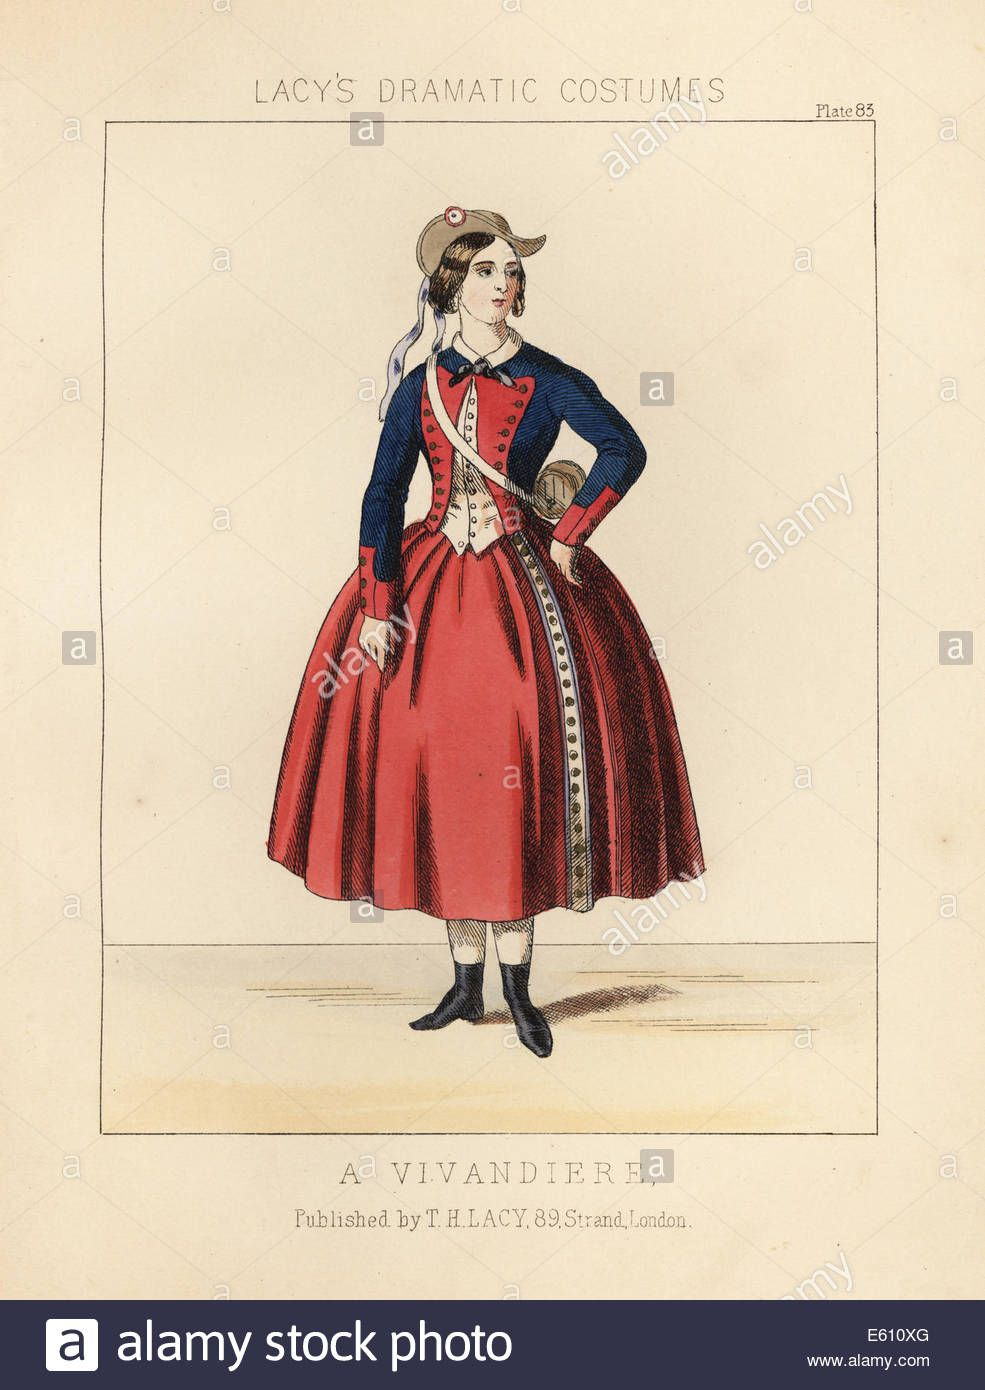 Download This Stock Image Costume Of A Vivandiere Or Female Sutler With The French Army 19th Century E610xg From Alamy S French Army Stock Photos Costumes